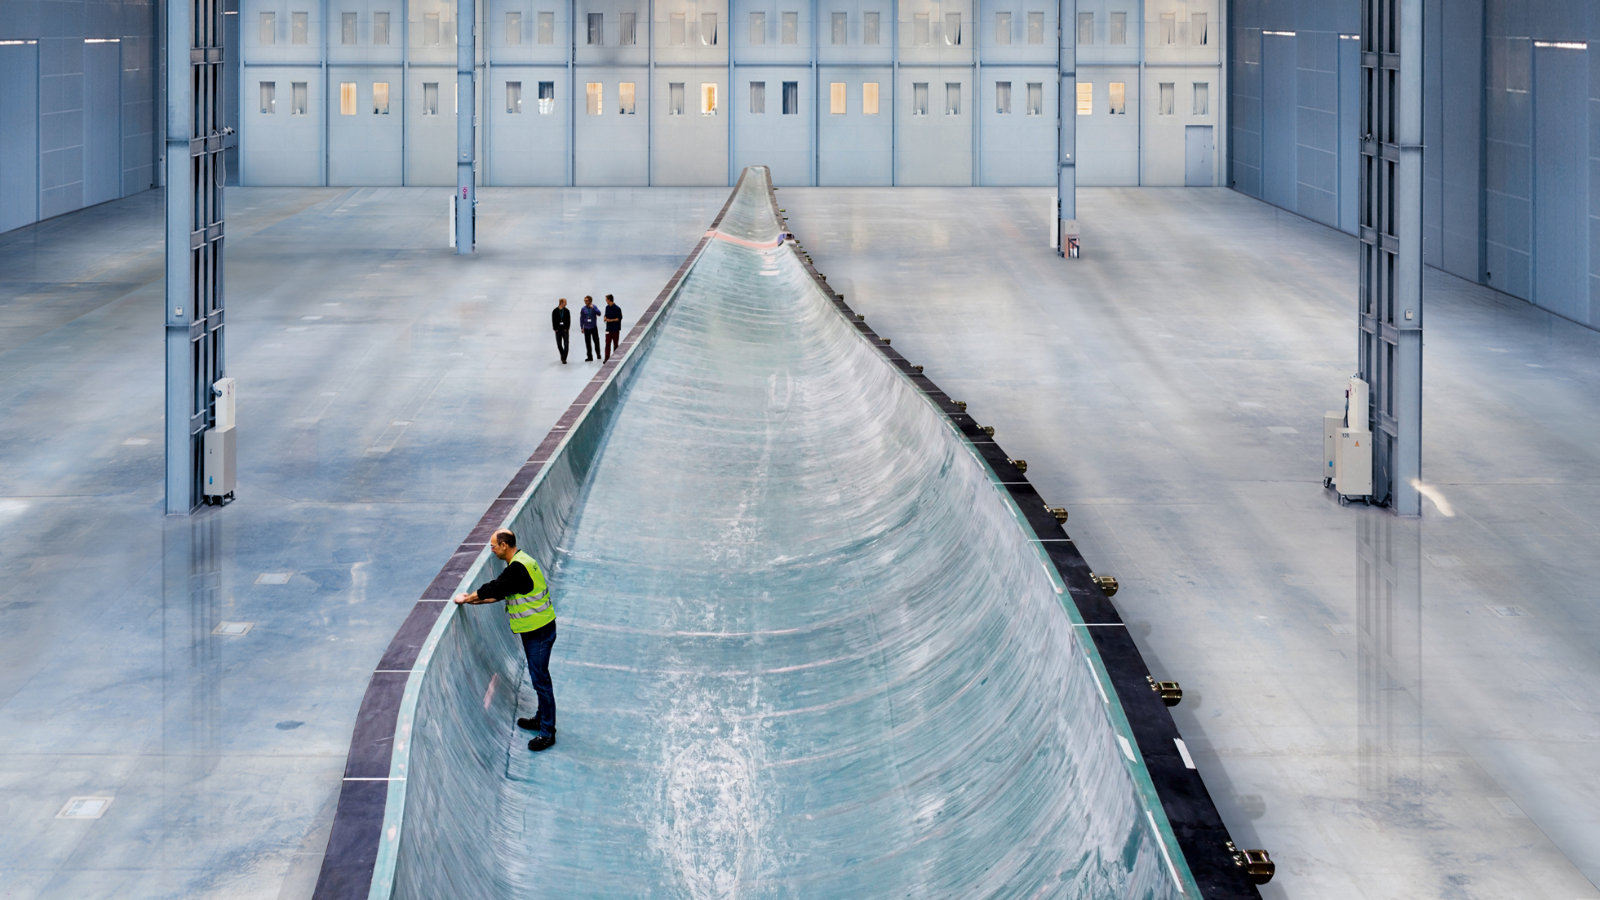 Click here to read The World's Biggest Wind Turbine Blades Are So Long Their Tips Spin at 180 MPH